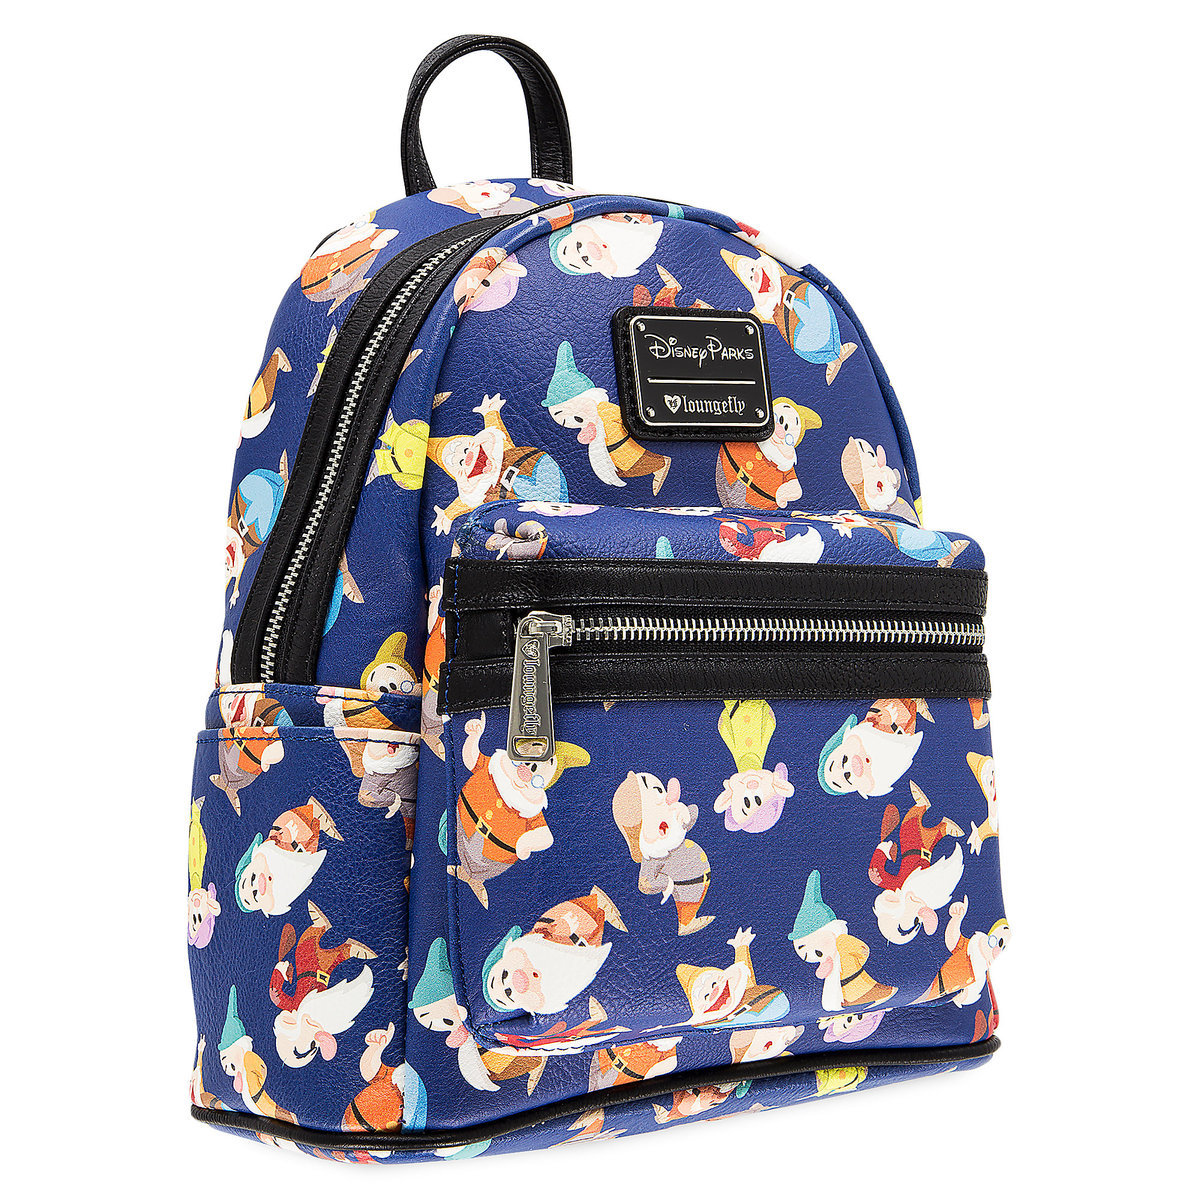 Disney Parks Mini Backpack - Snow White s Seven Dwarfs by Loungefly